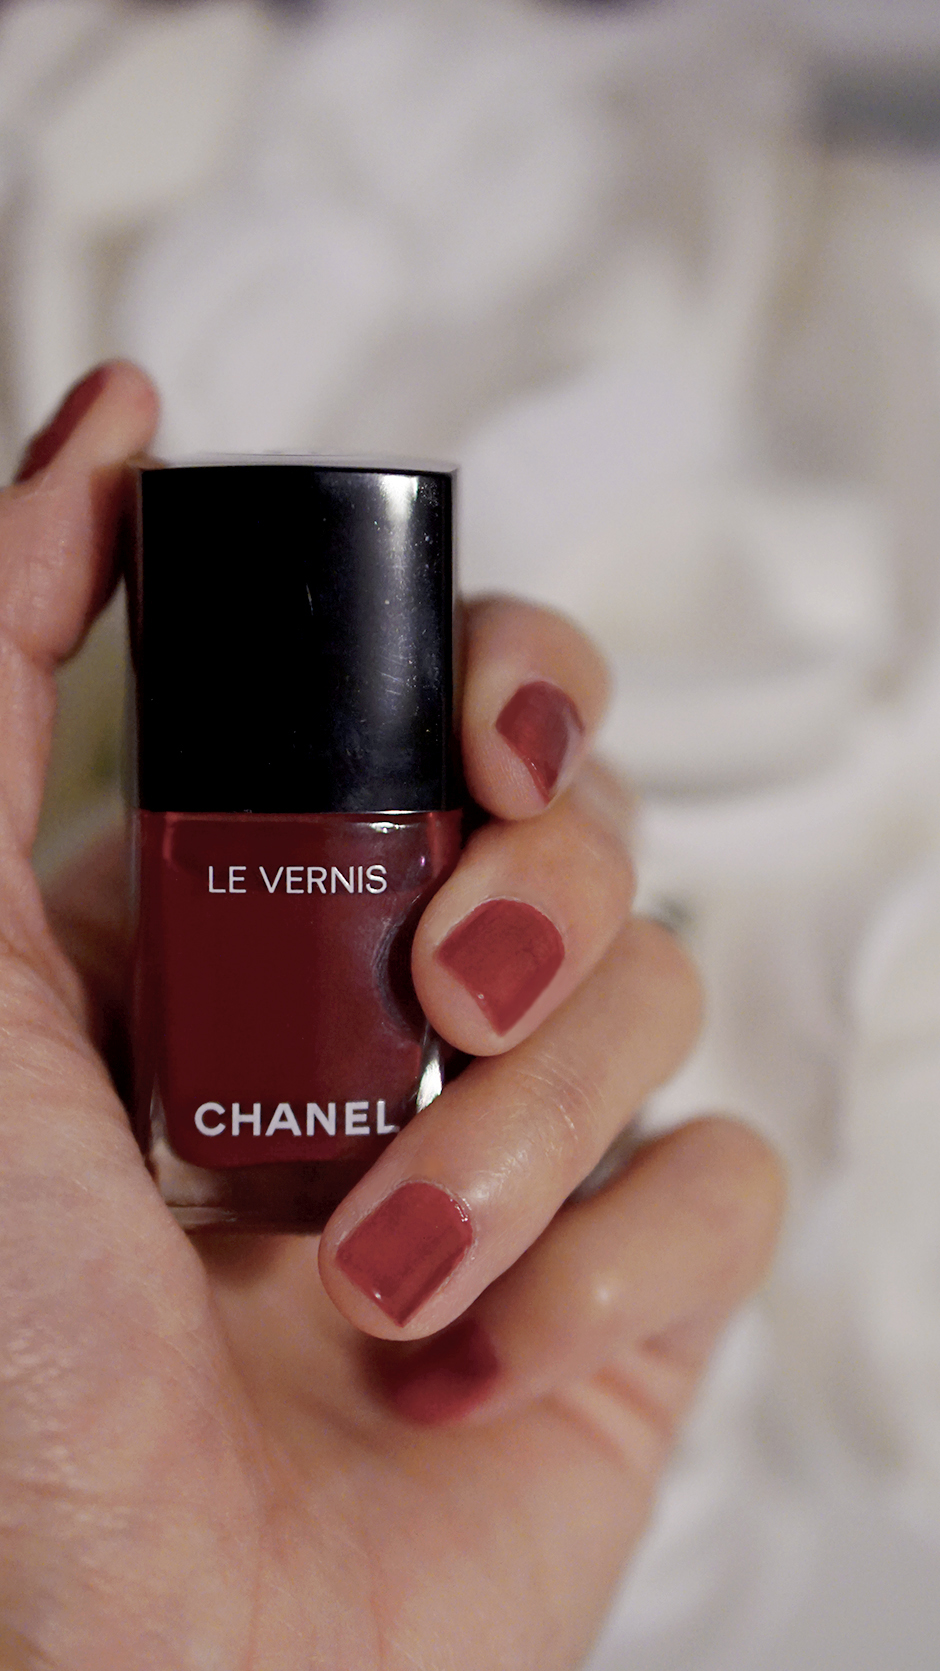 Chanel Beauty Day to Night Look Classic Red Nail Polish #ad #chanel #chanelpartner #chanelbeauty #blogger #fashionblogger #styleblogger #streetstyle #beautyvanity #beautytable #beautyproducts #makeuptips #holidays #party #redlips